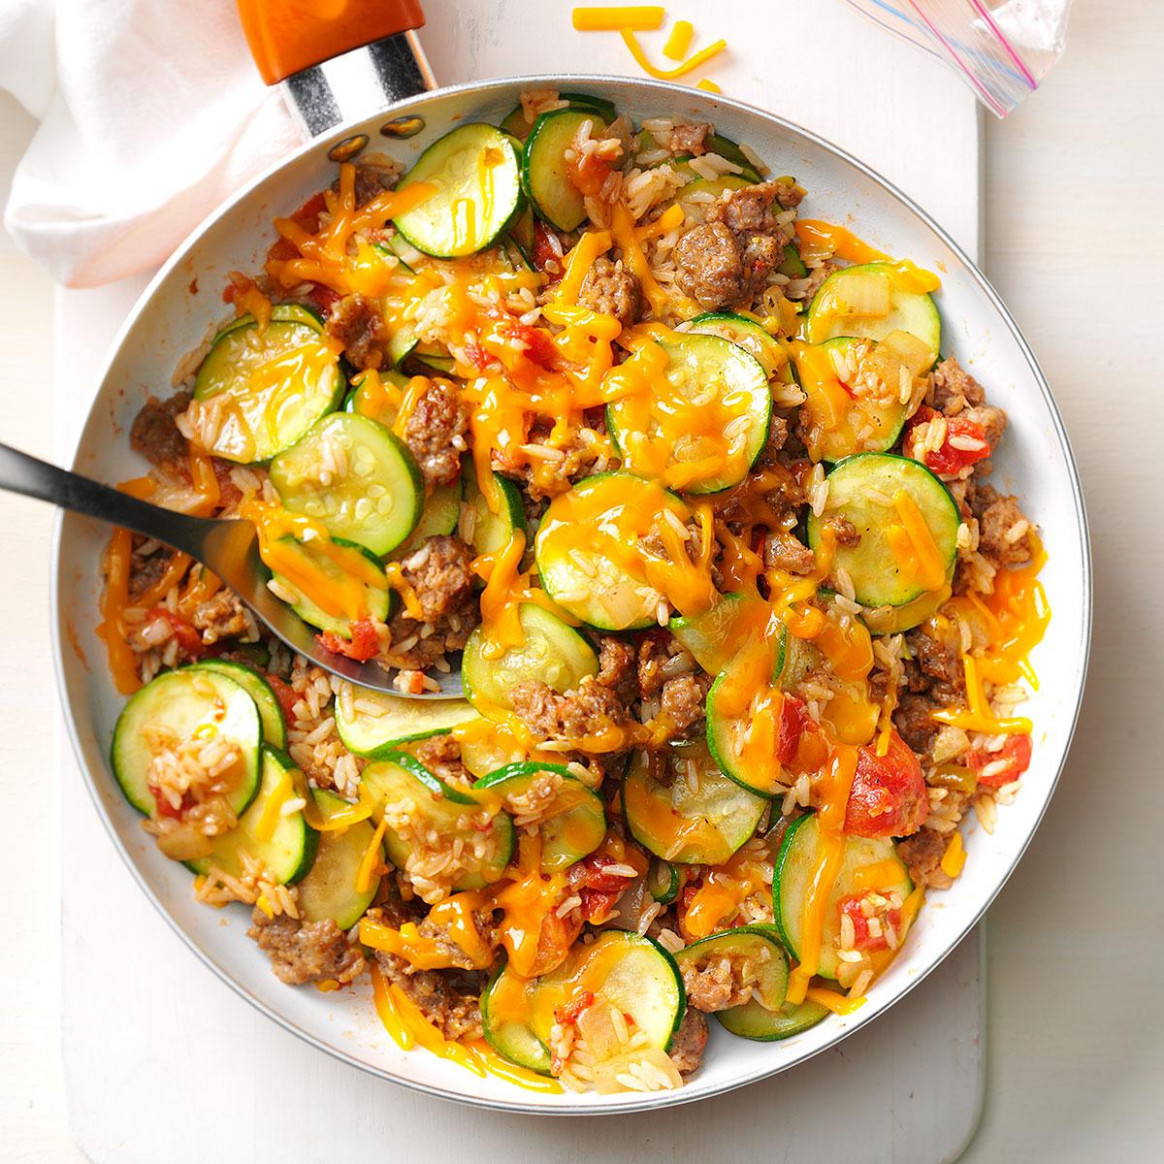 Zucchini & Sausage Stovetop Casserole - jimmy dean sausage recipes dinner